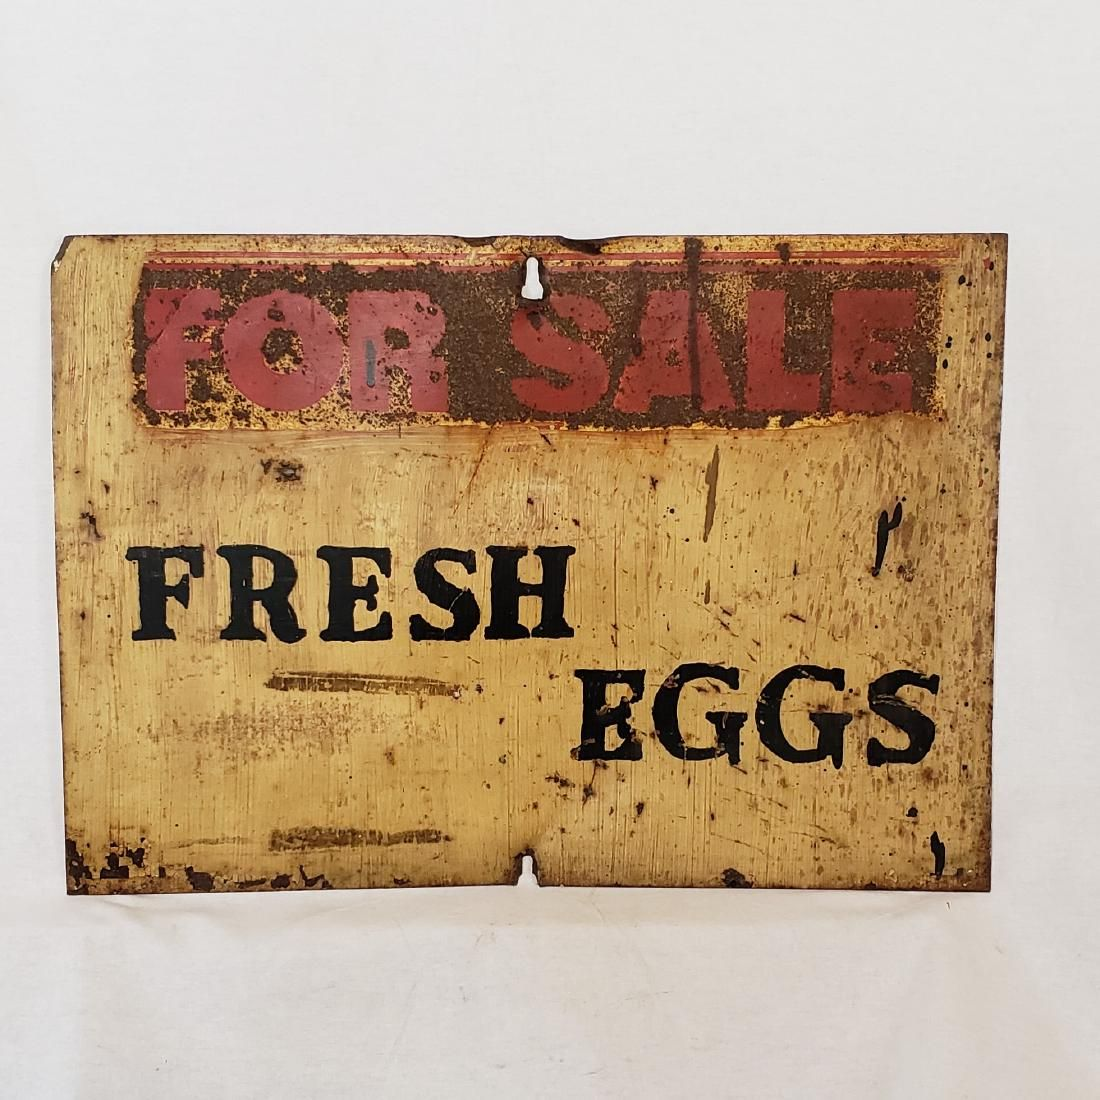 Fresh eggs for sale sign ca 1930's